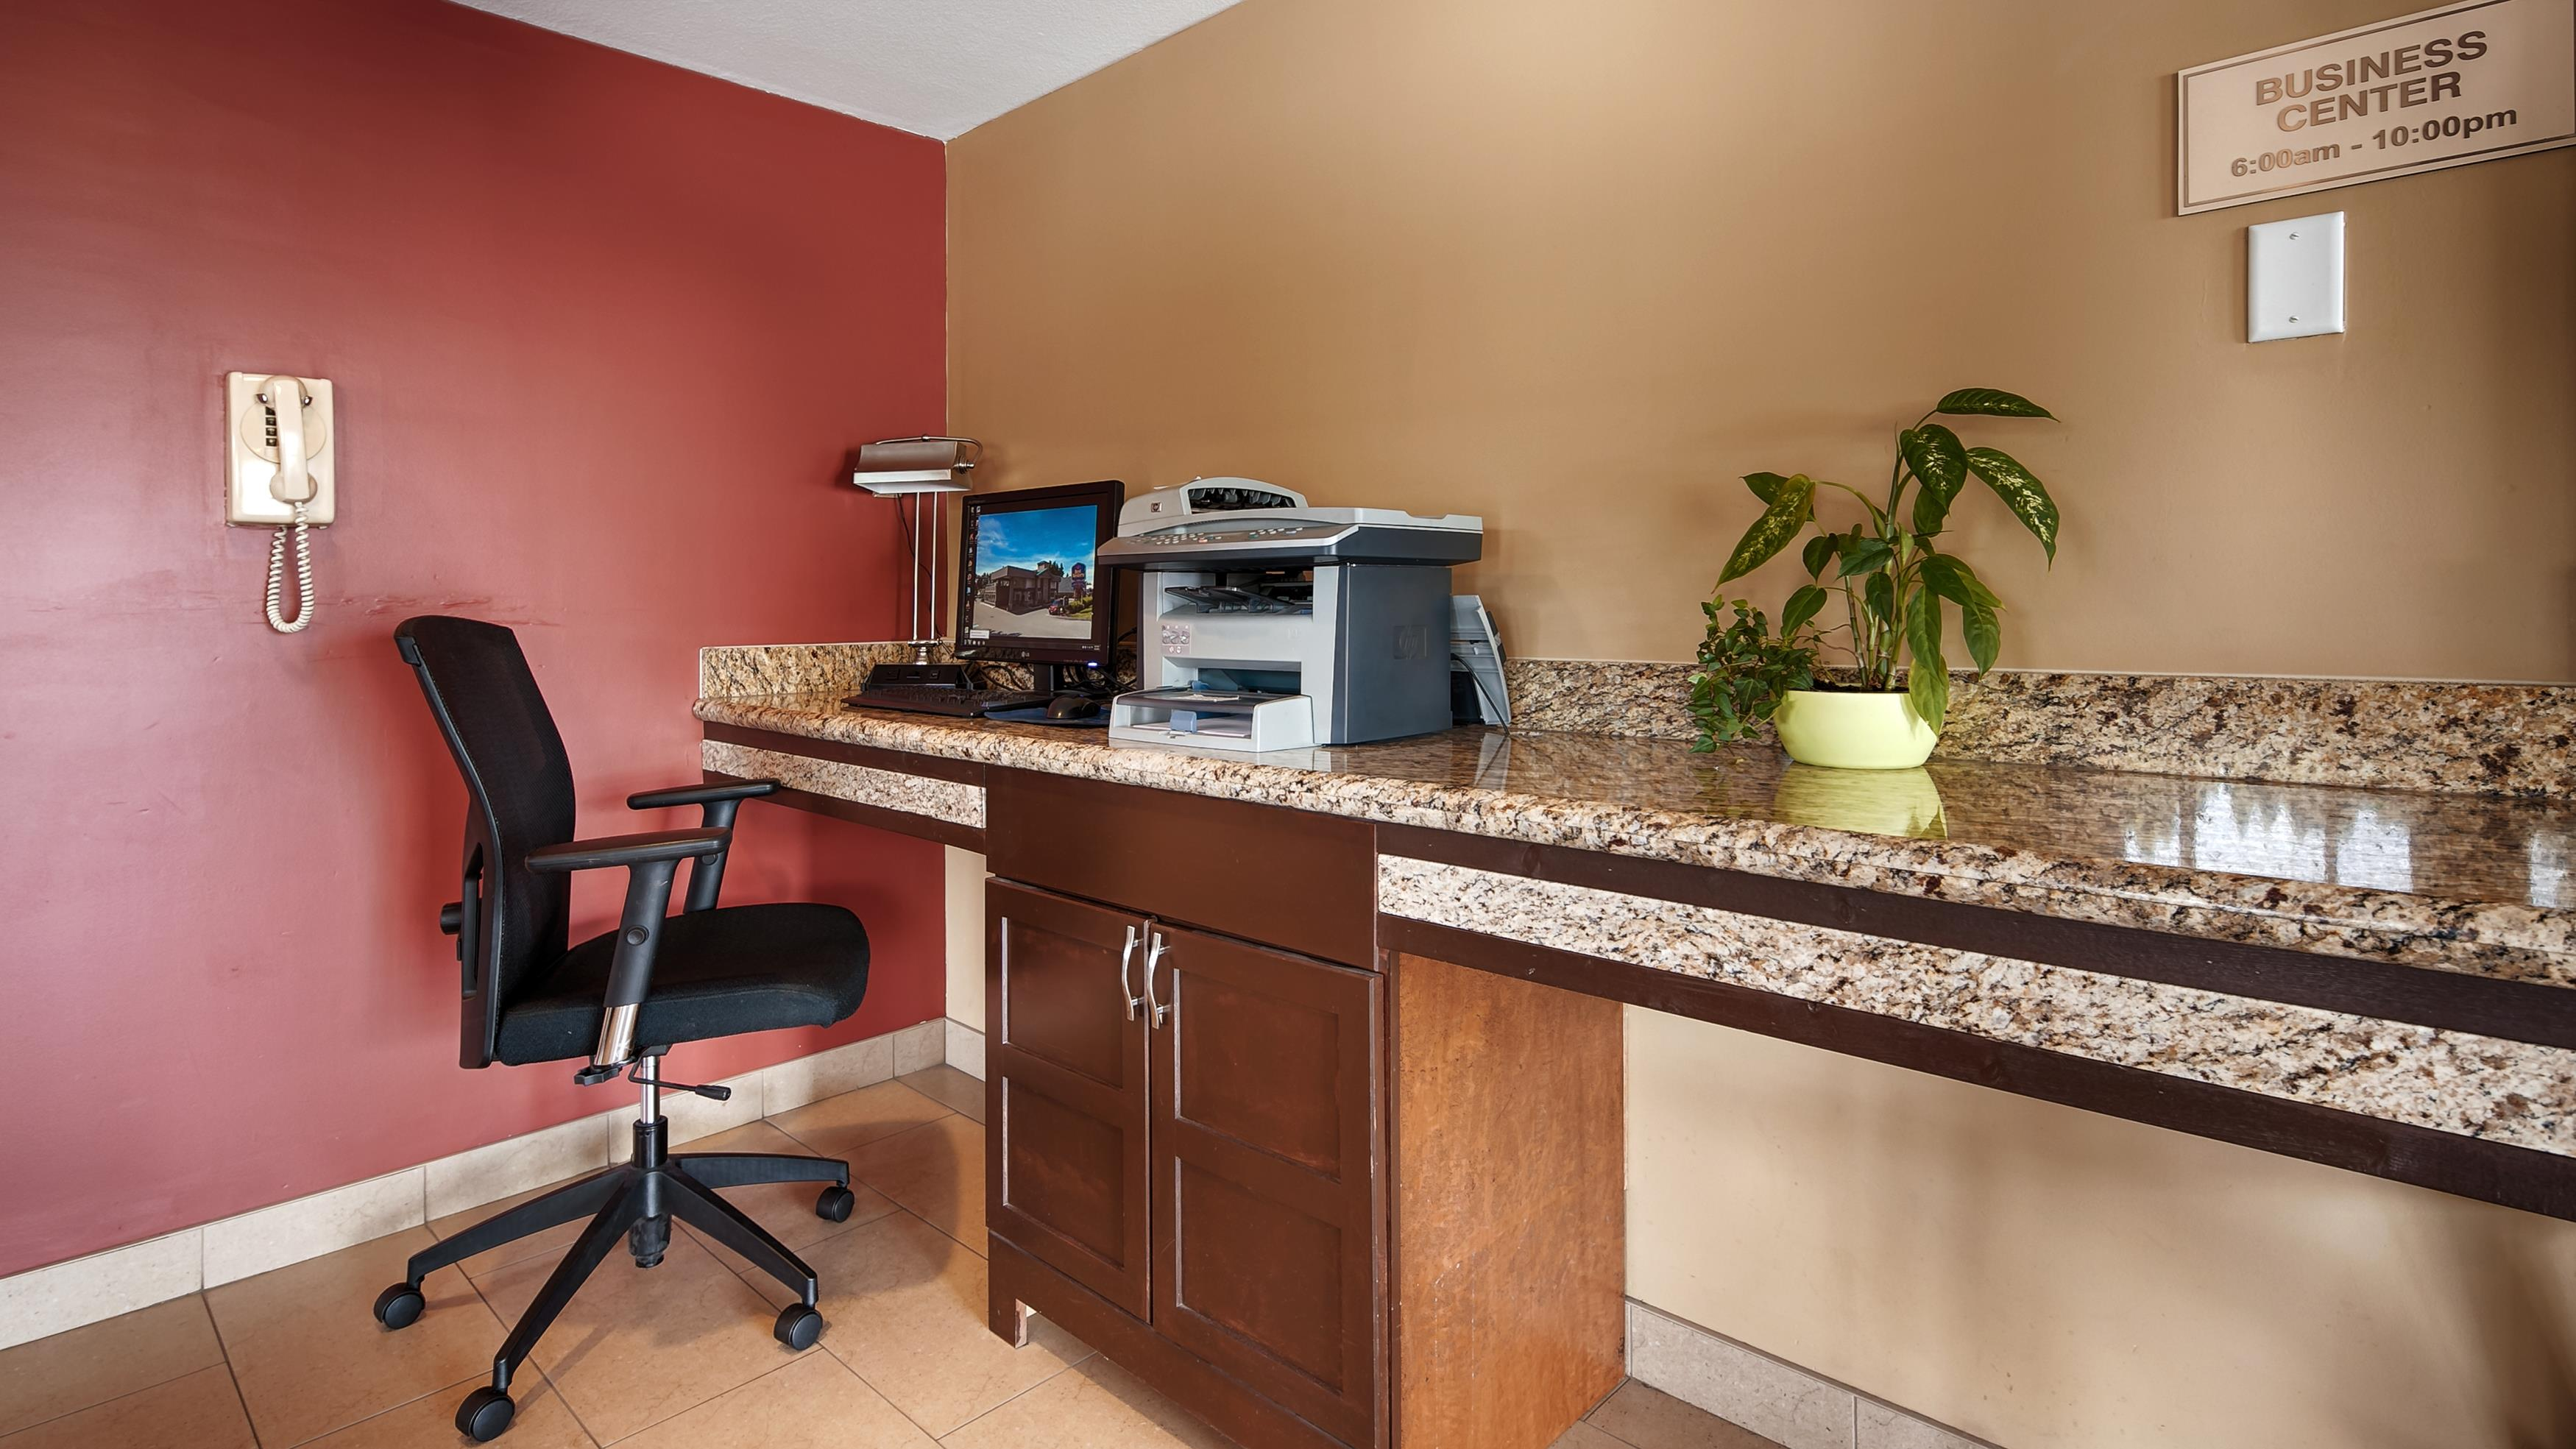 Best Western Maple Ridge Hotel in Maple Ridge: Business Center